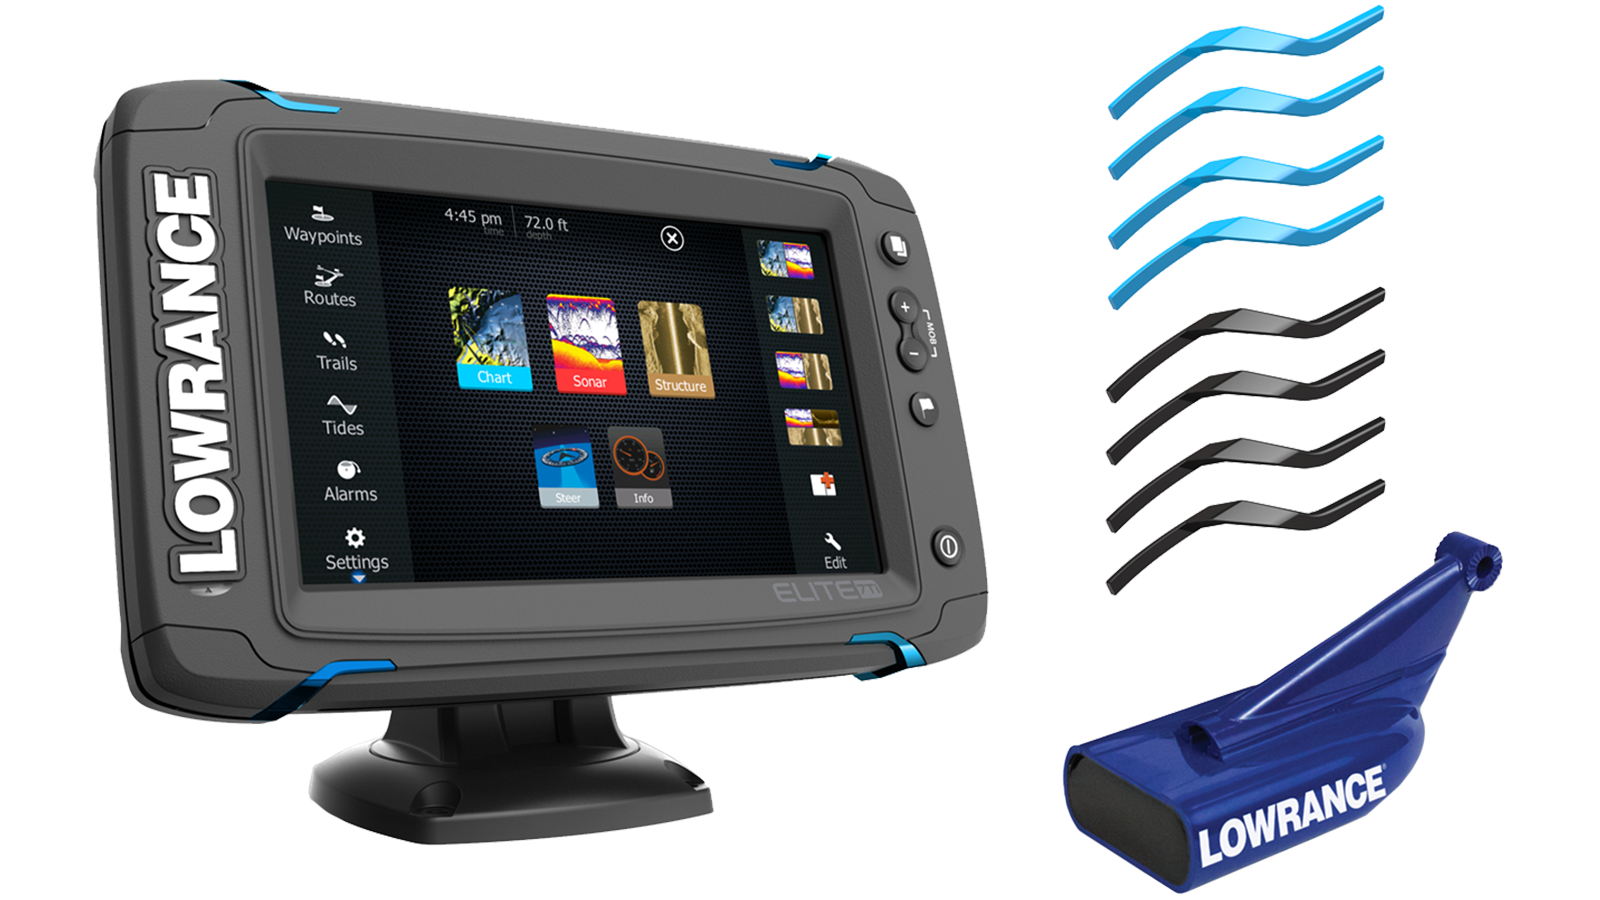 accessories lowrance usa Mercury Wiring Harness from mounting brackets to replacement cables, lowrance covers all marine electronic requirements in addition, free phone apps can be downloaded to keep